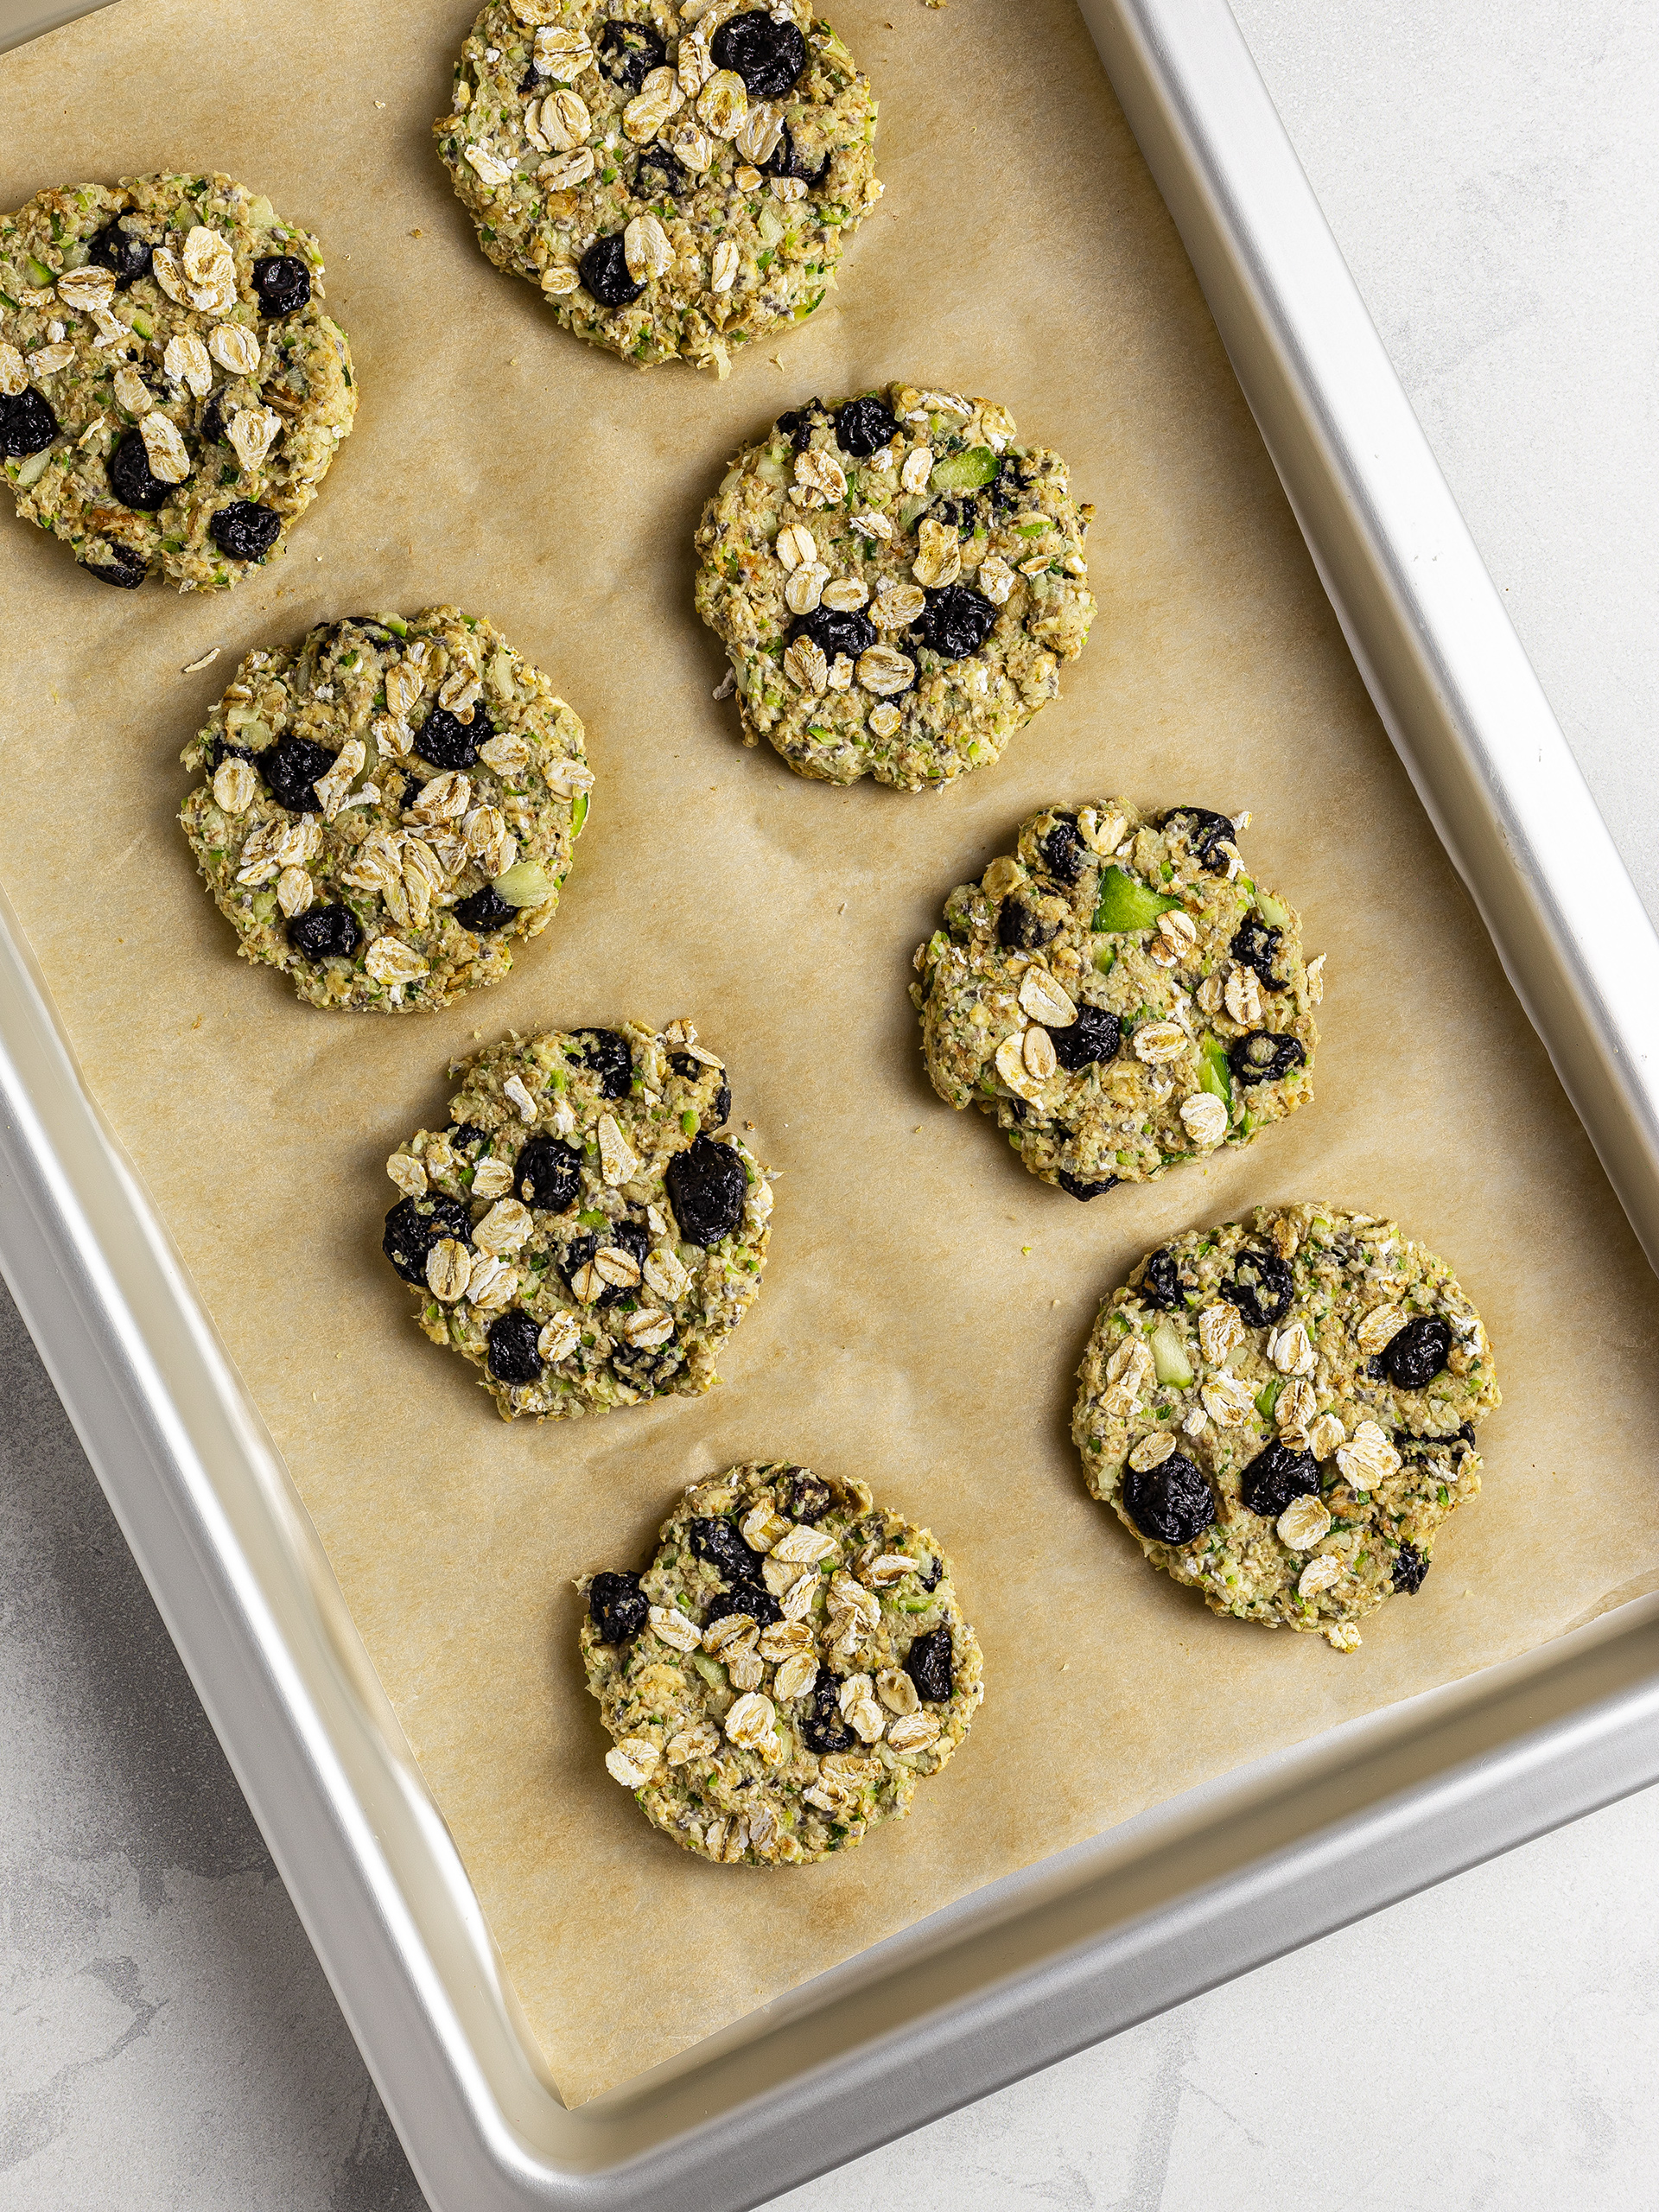 Shaped zucchini cookies on a baking tray